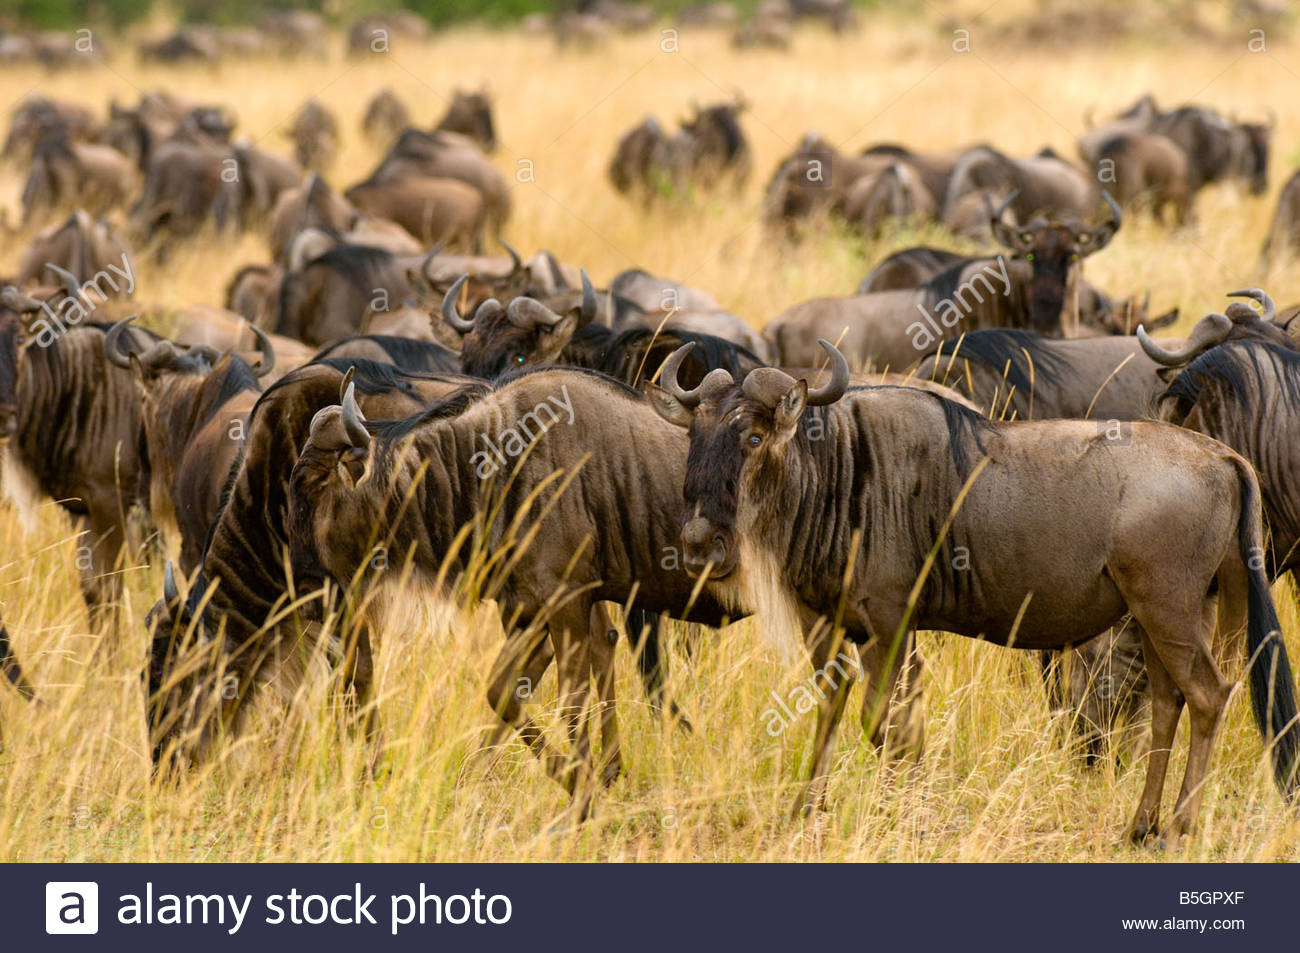 Herds of wildebeest arriving in Masai Mara National Reserve Kenya from Tanzania as part of the annual Great Migration Stock Photo